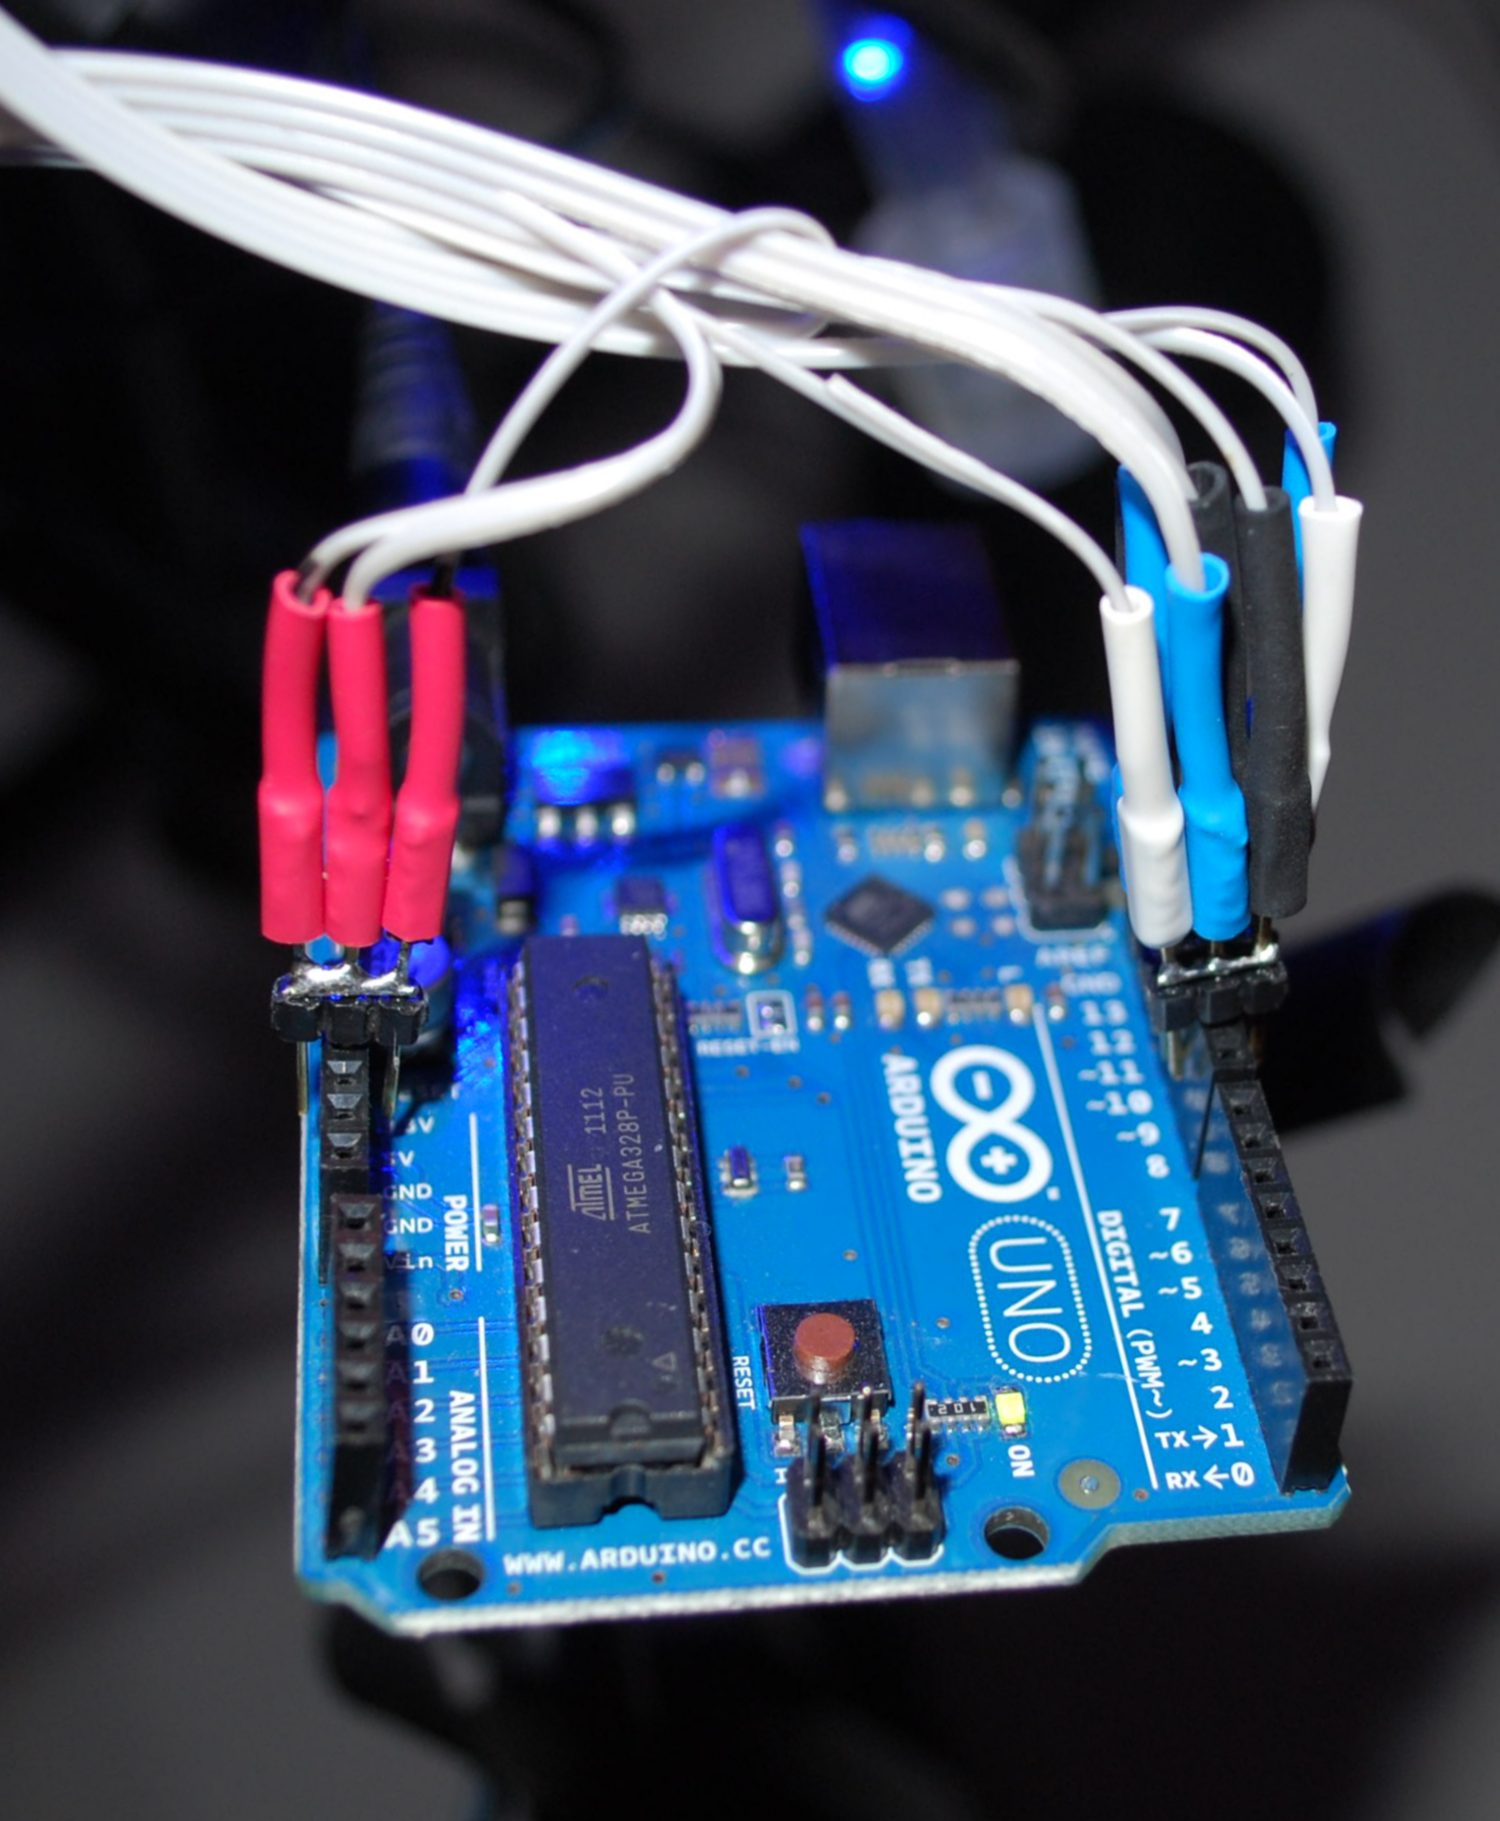 Posts With Ikea Label Power Over Ethernet For Arduino Freetronics The Red One Is Anode